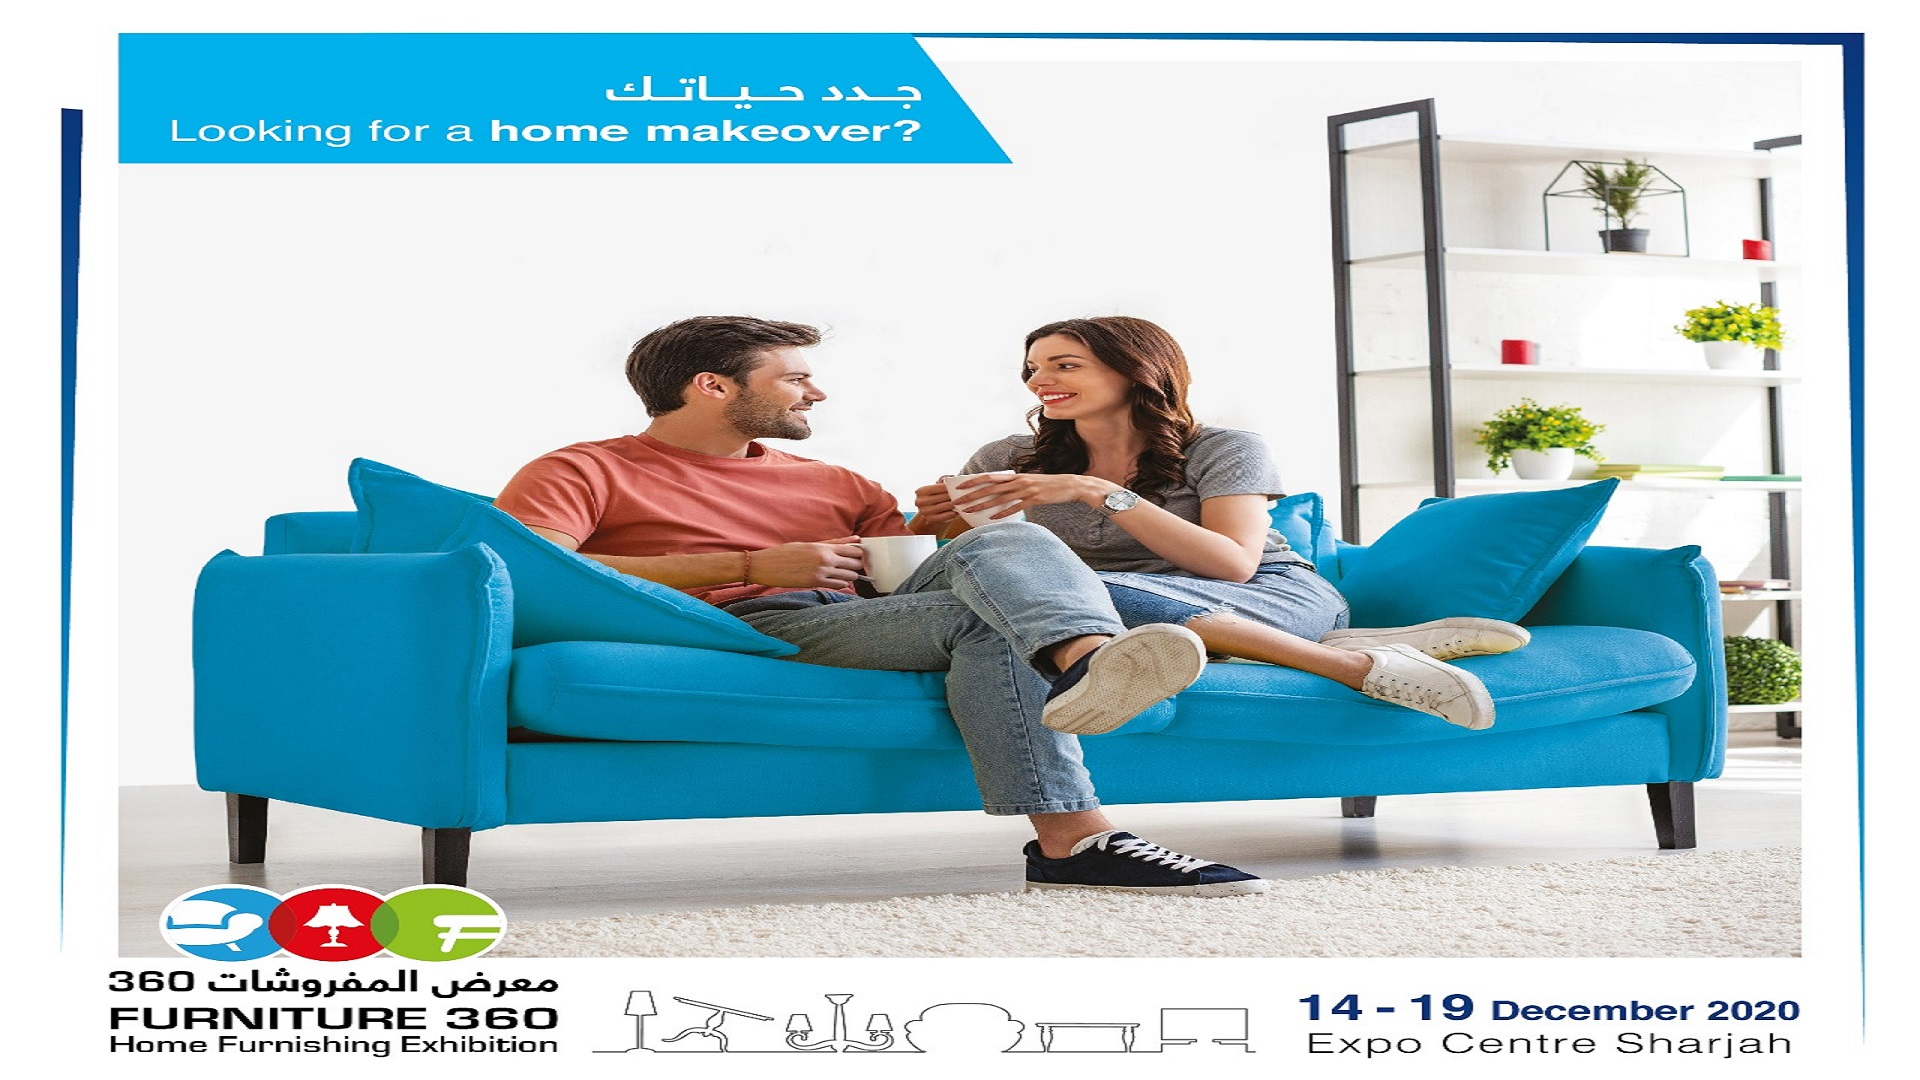 Furniture 360 Exhibition - Trendz 2020 Exhibitions - Expo Sharjah